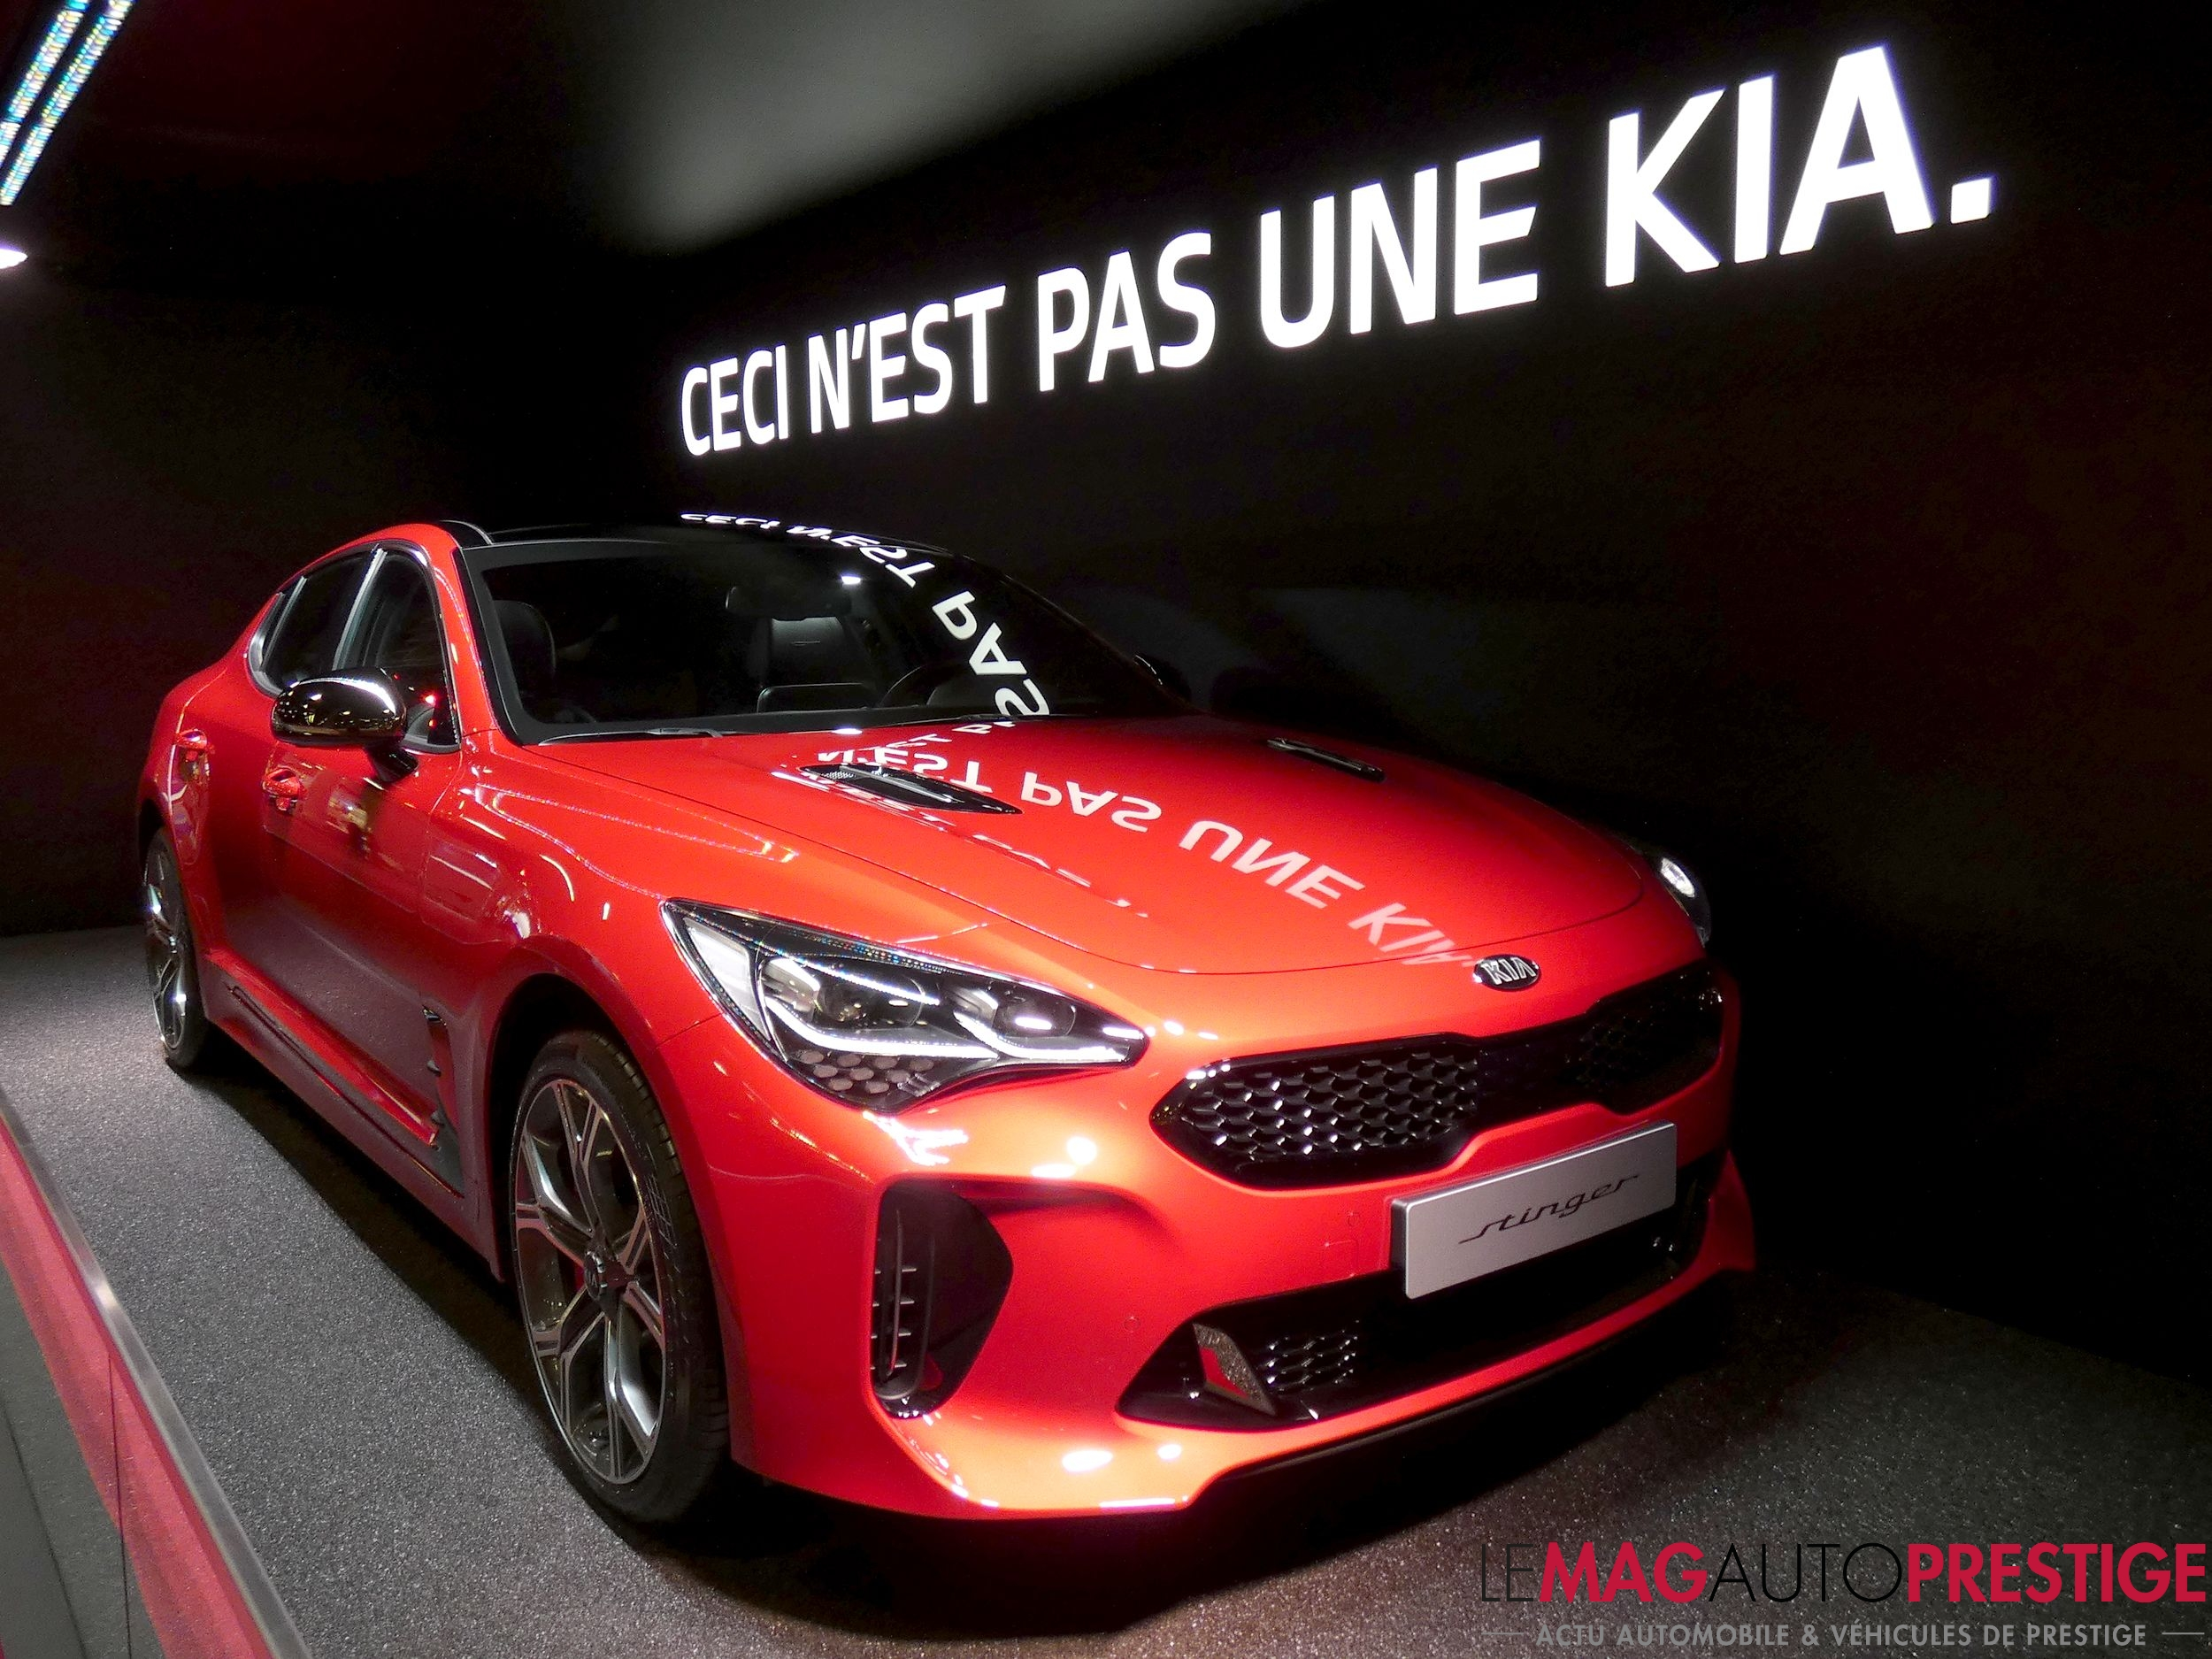 mondial de l 39 auto 2018 la kia stinger a de quoi s duire le mag auto prestige. Black Bedroom Furniture Sets. Home Design Ideas